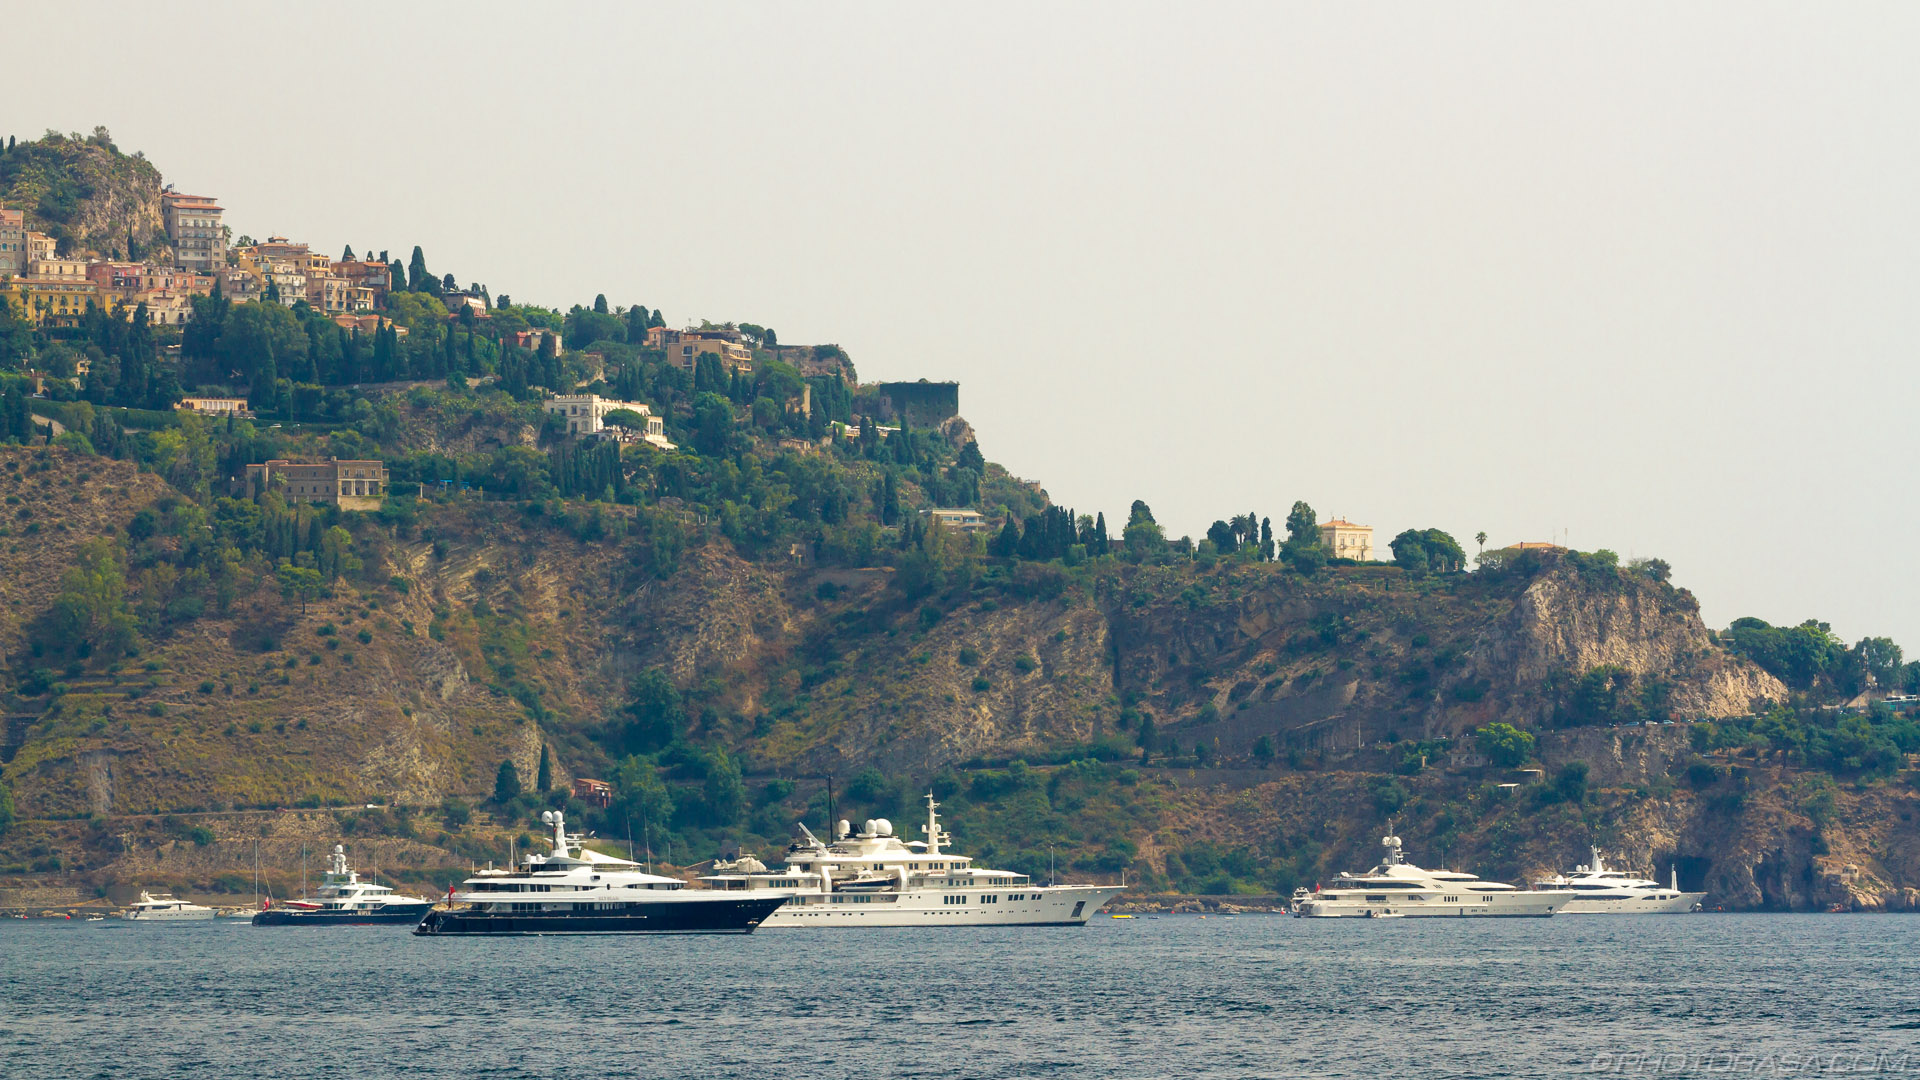 https://photorasa.com/giardini-naxos/group-of-super-yachts-near-giardini-naxos/